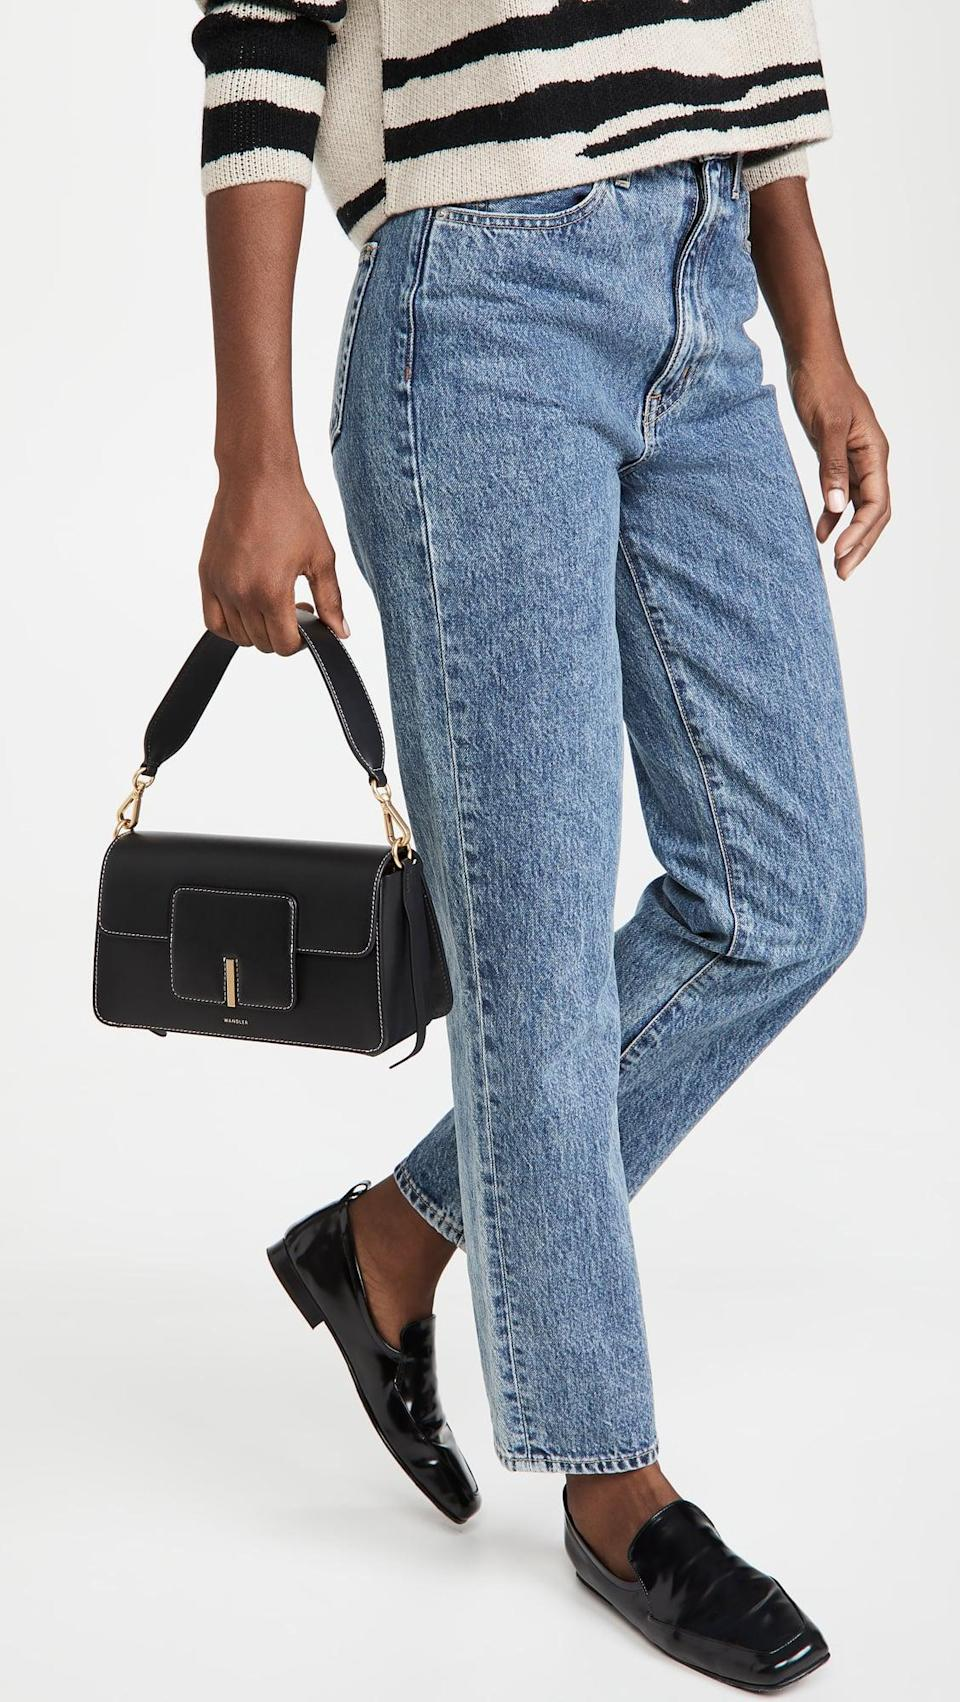 <p>The <span>Wandler Georgia Bag</span> ($850) just might be one of our favorite choices. The shoulder strap is the perfect length, but it also comes with a longer crossbody strap as well.</p>